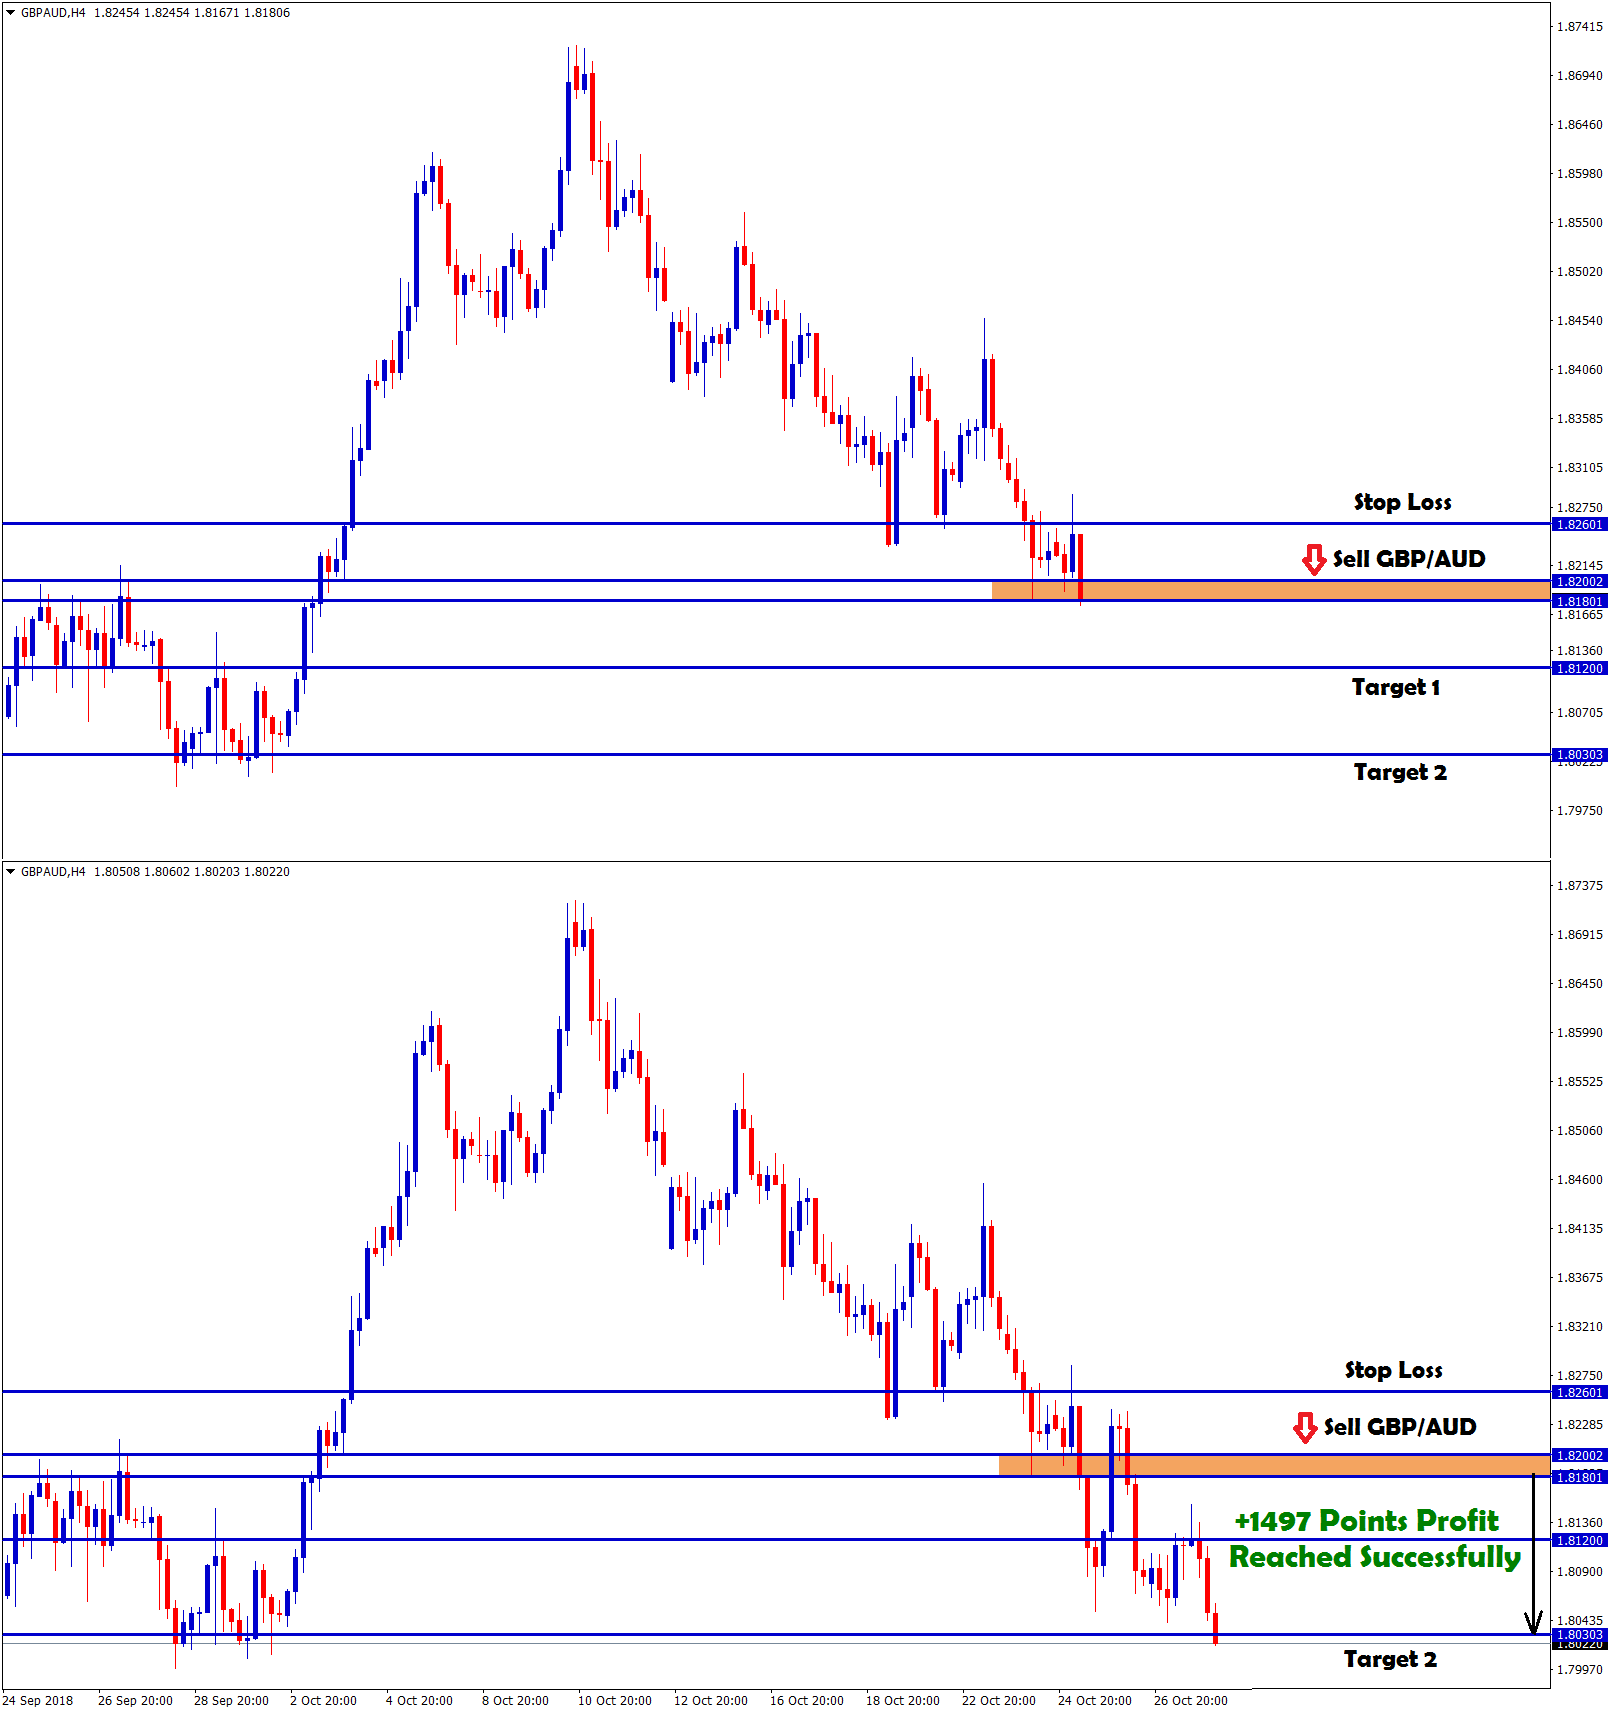 gbp aud sell signal made profit with +1497 points profit